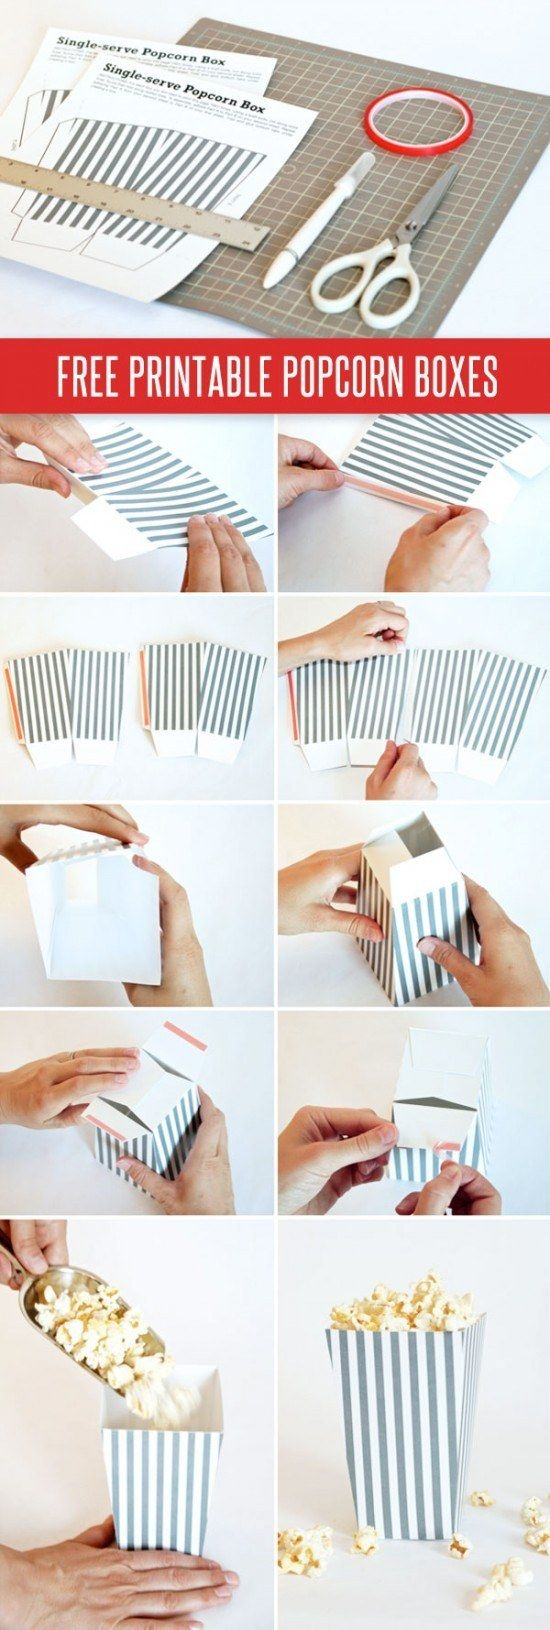 Individual Popcorn Boxes | 15 Useful And Artsy Things You Never Knew You Could Print At Home